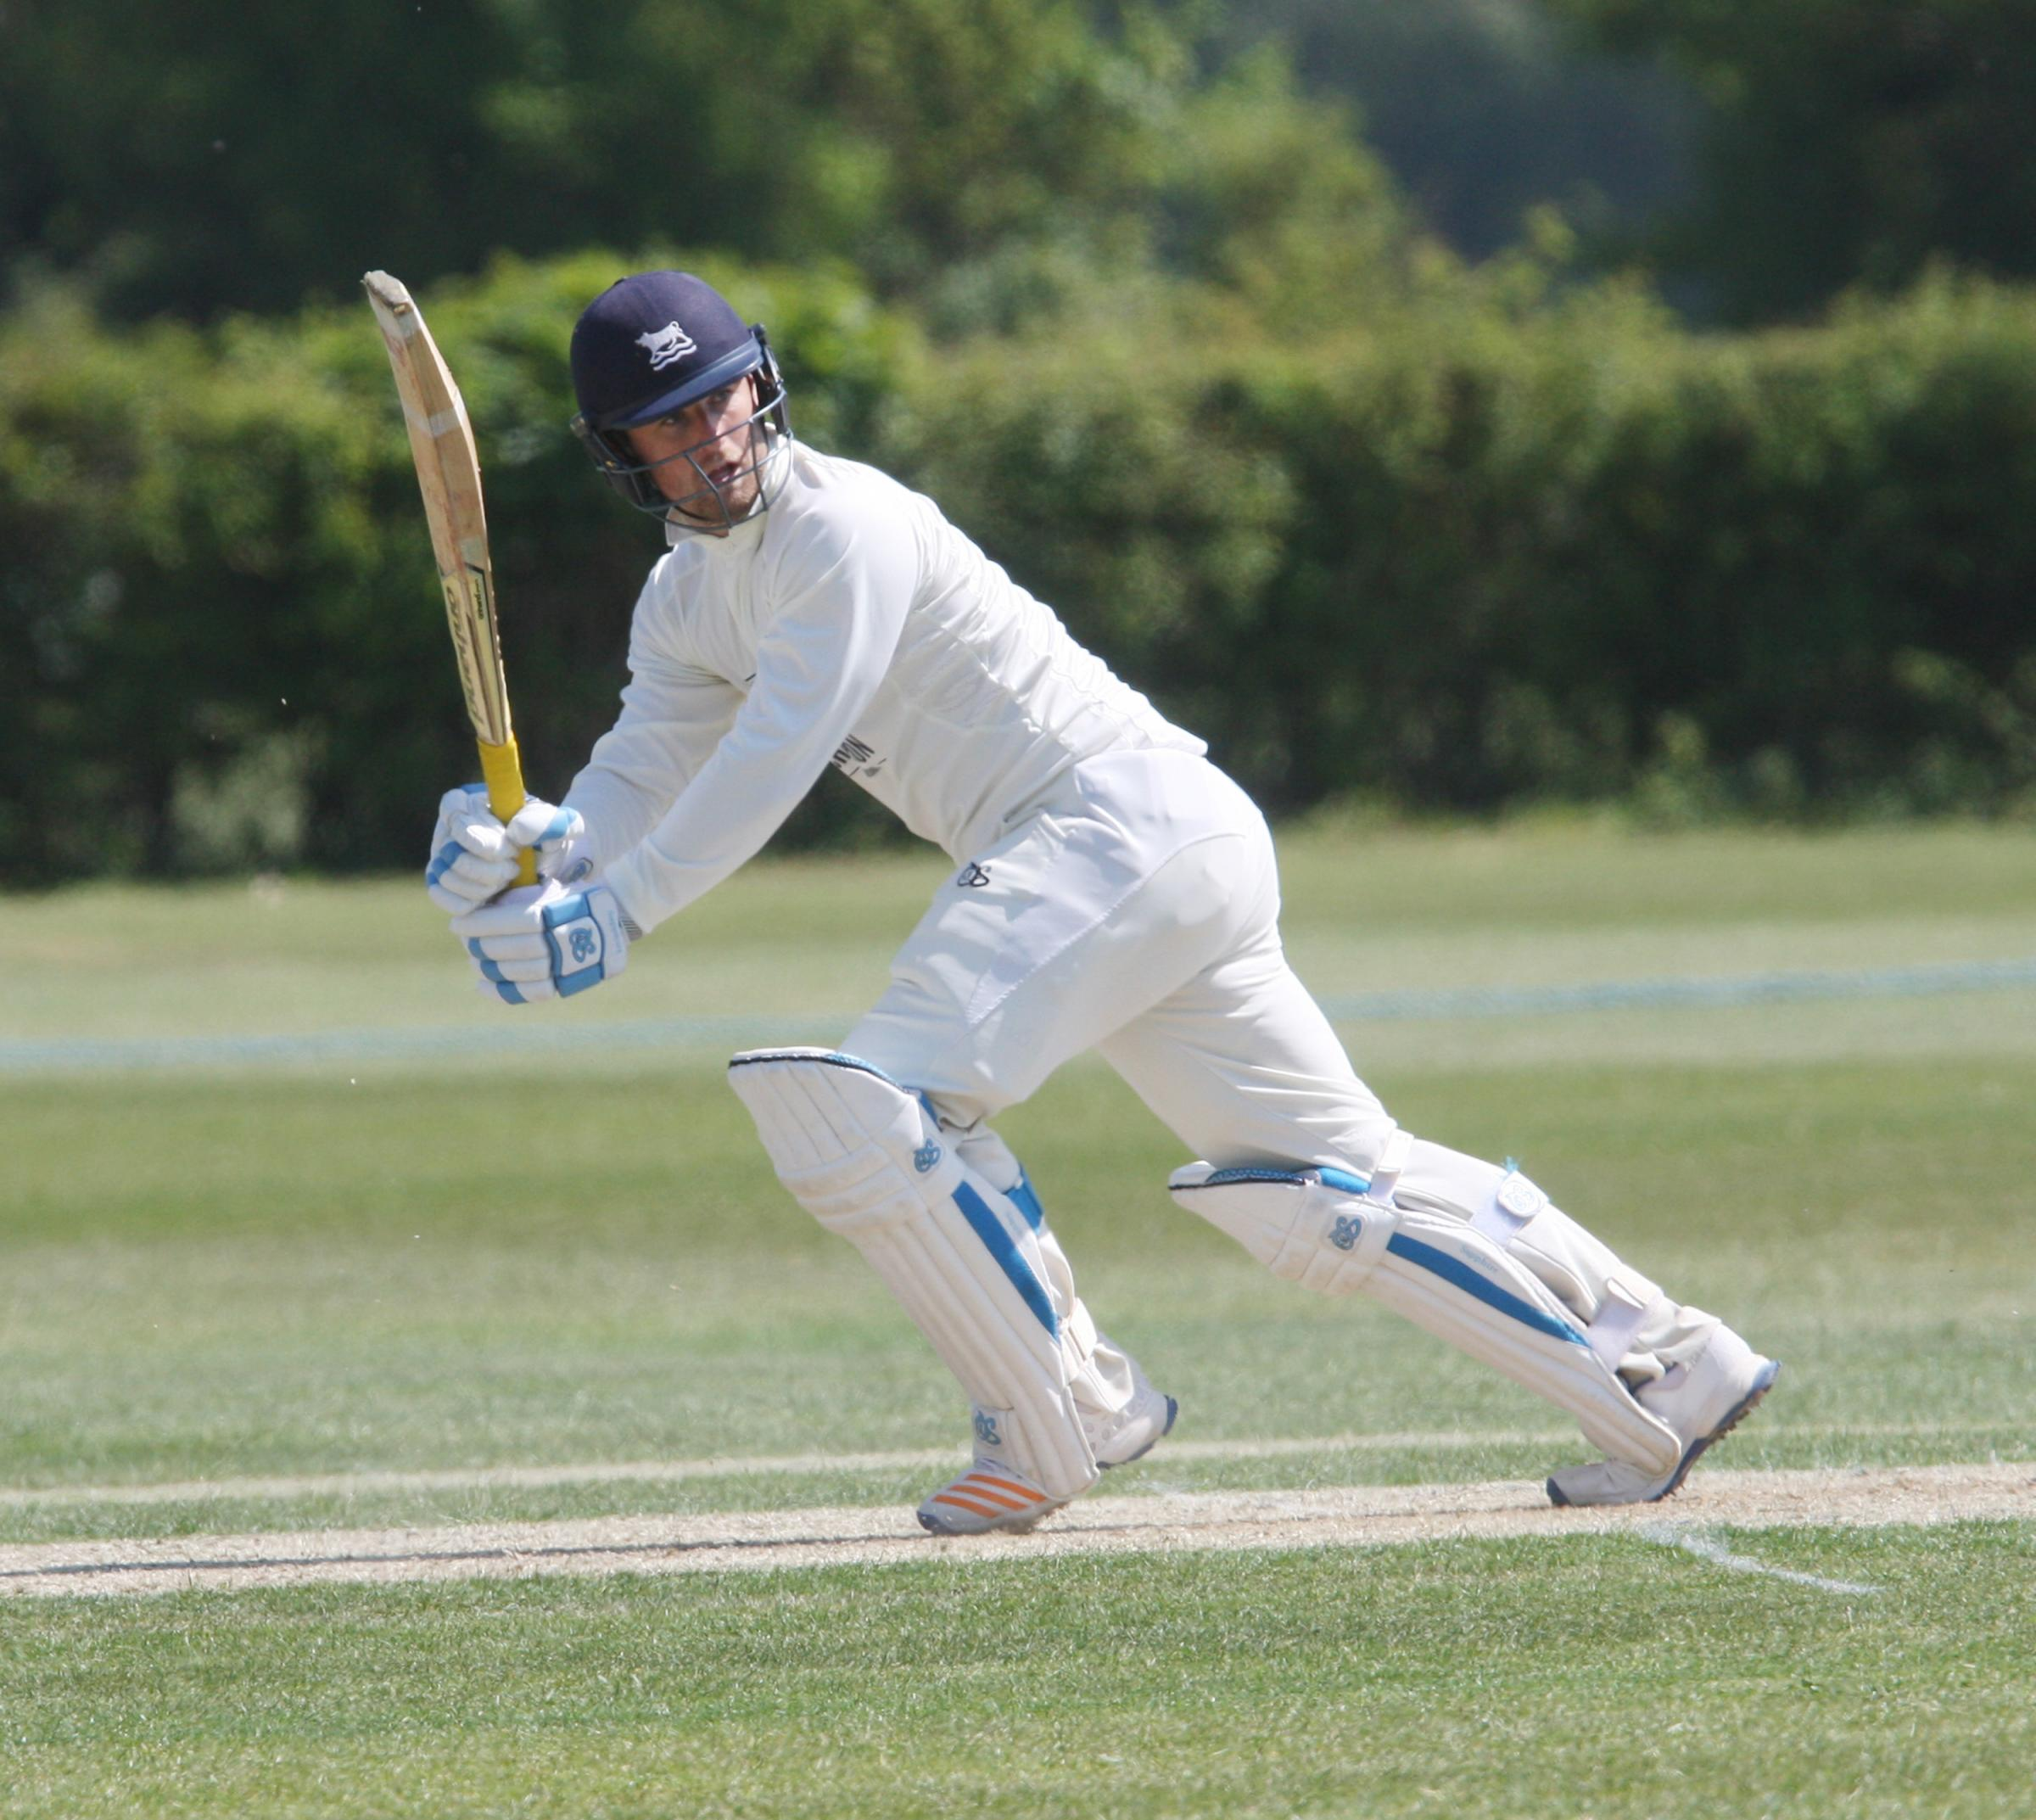 Jonny Cater's 67 in the second innings was in vain as Oxfordshire suffered a nine-wicket defeat at Berkshire